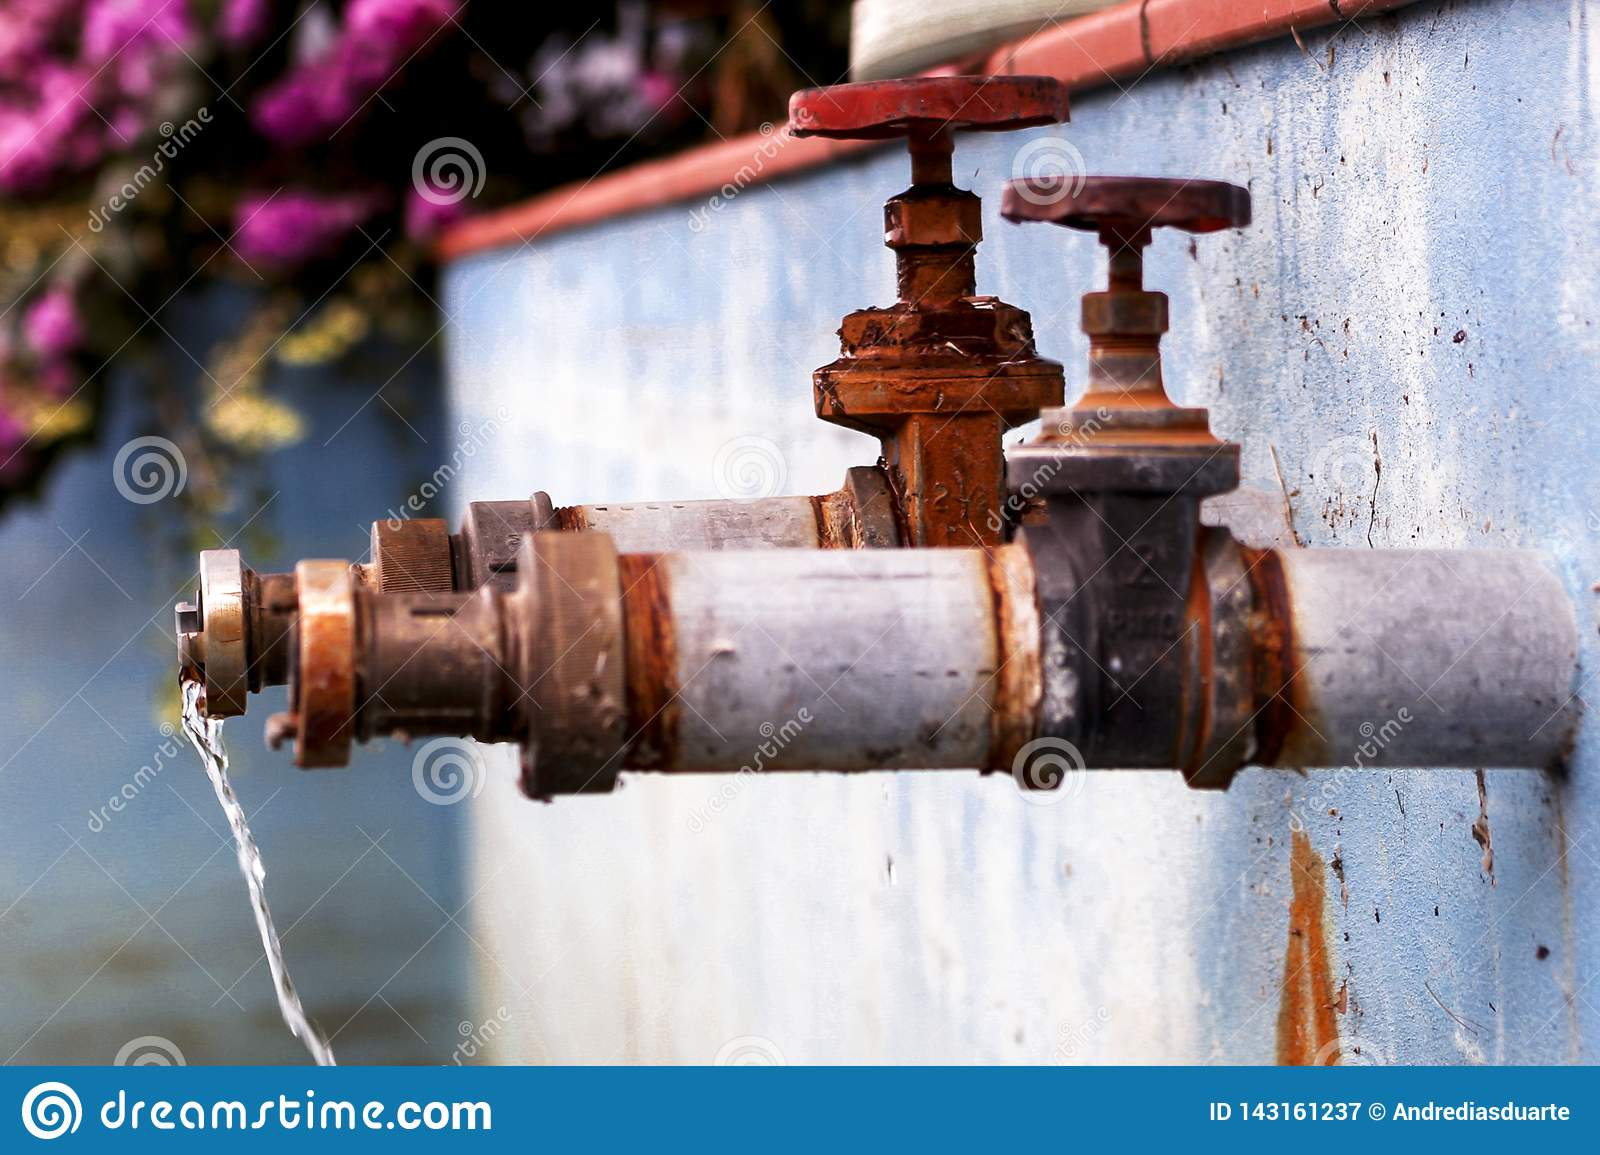 Two faucets with water running